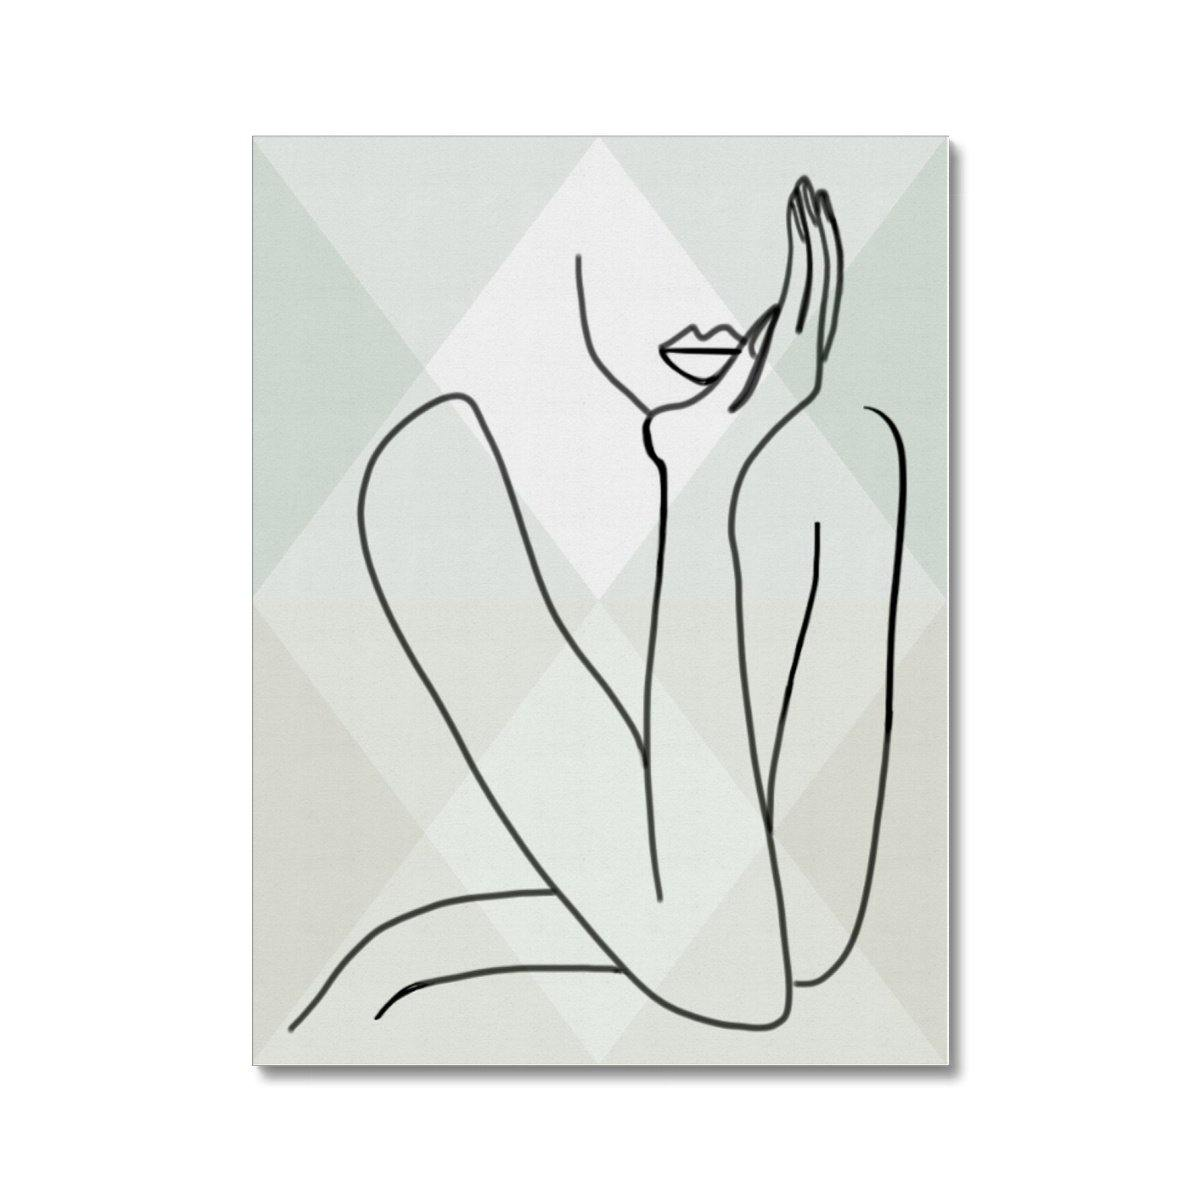 Abstract Line Art - Posing Woman - Canvas Wall Art (3 Frame Colours Available) - Treat Haven